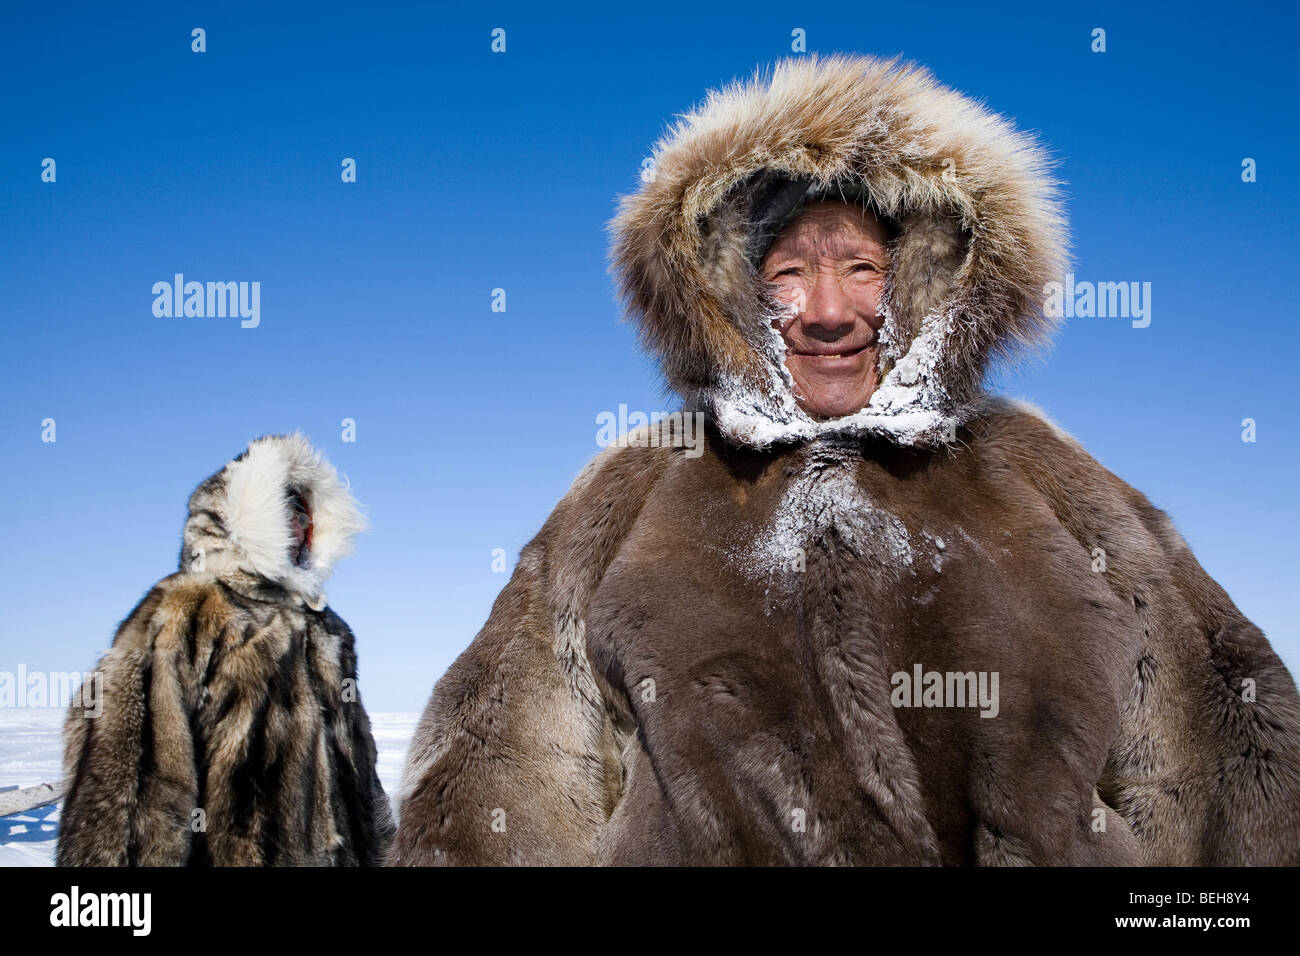 9edbe0a7460 Northern Canada Eskimo Stock Photos   Northern Canada Eskimo Stock ...